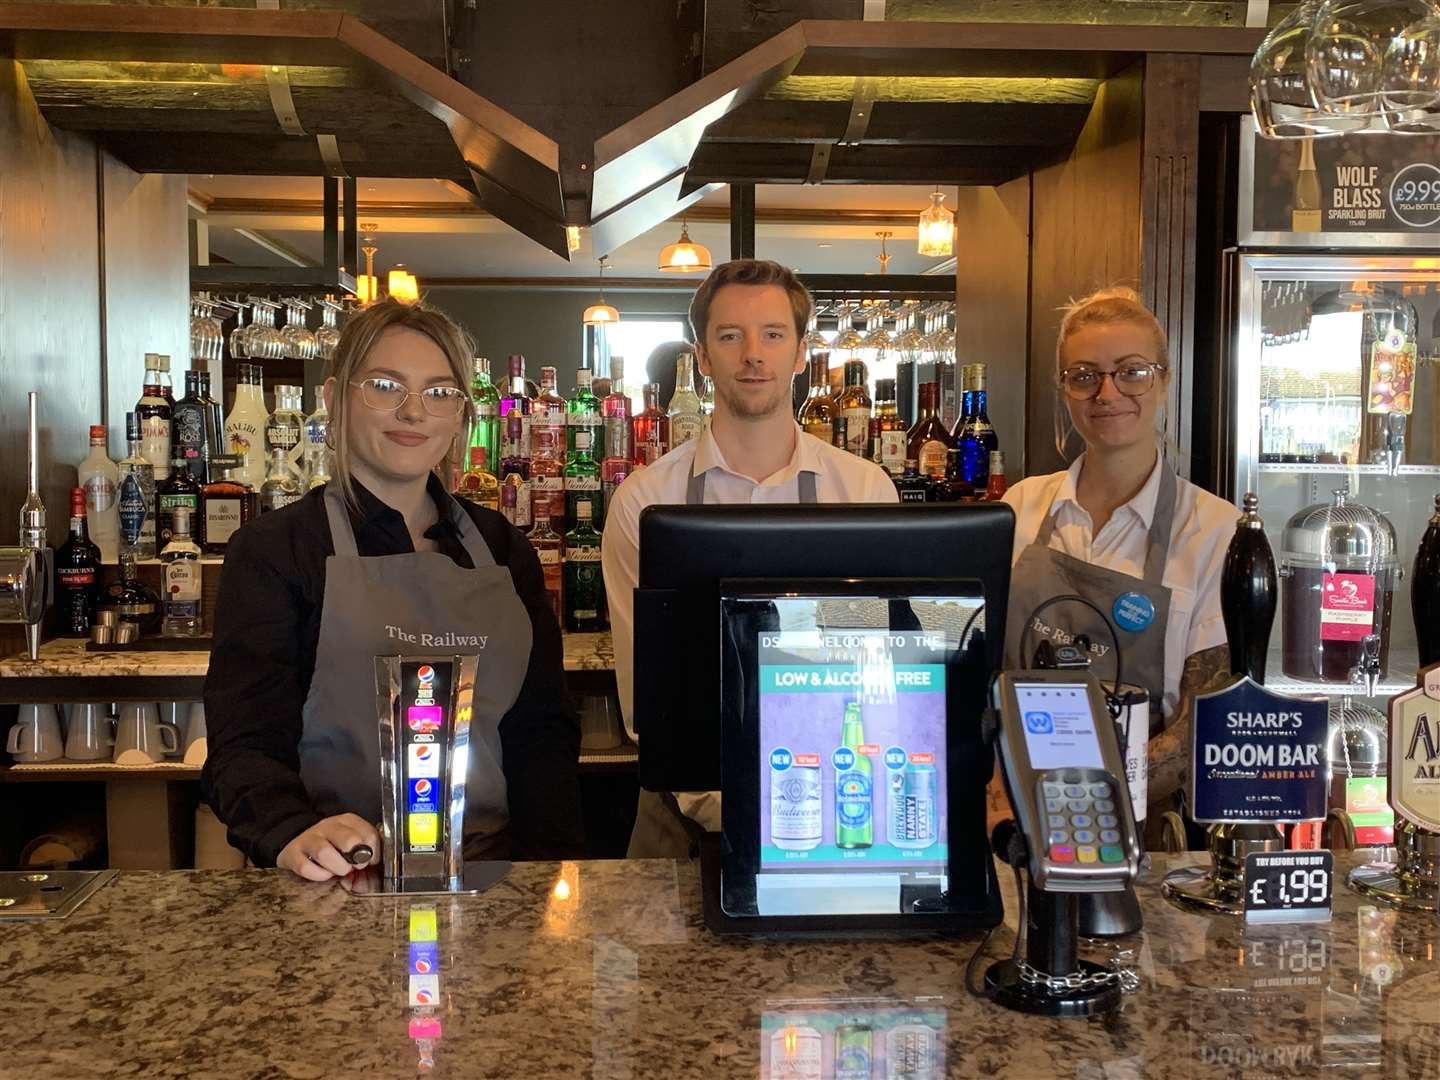 The bar staff are ready to meet their new customers at The Railway in Station Road, Rainham (18008990)